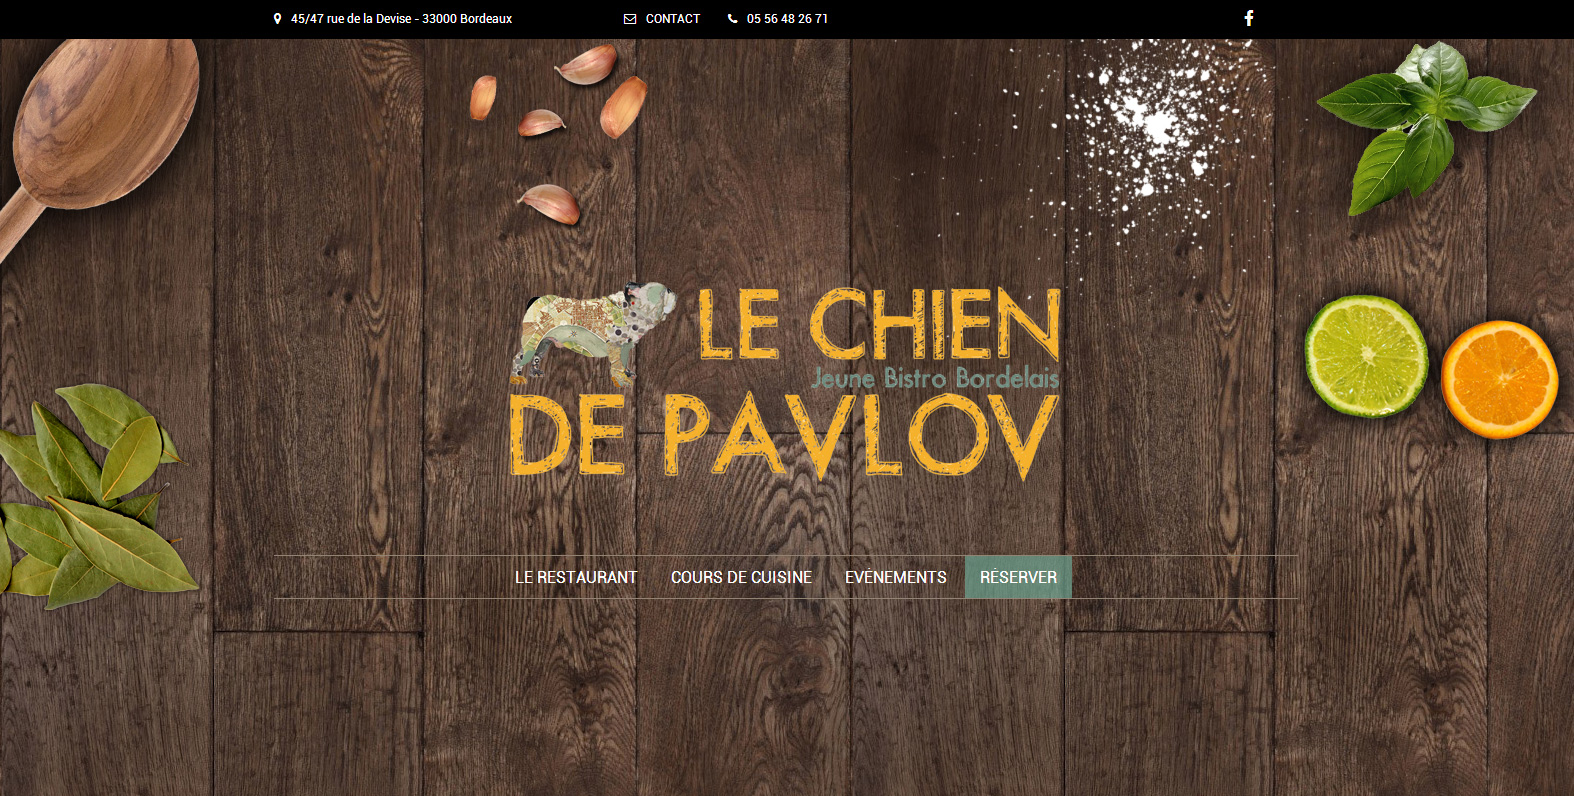 le chien de pavlov jeune bistro bordelais. Black Bedroom Furniture Sets. Home Design Ideas